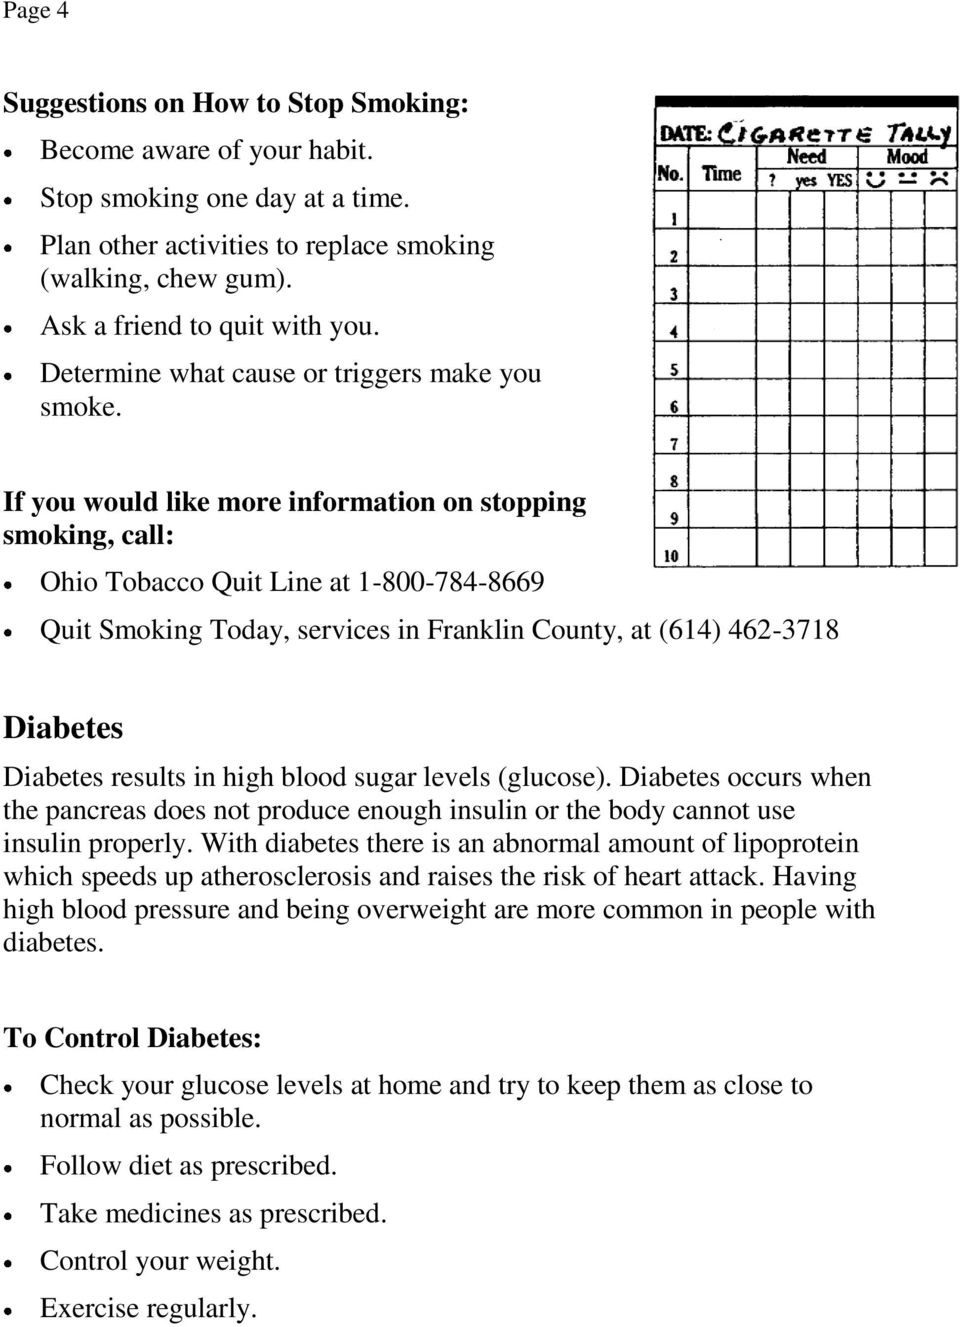 If you would like more information on stopping smoking, call: Ohio Tobacco Quit Line at 1-800-784-8669 Quit Smoking Today, services in Franklin County, at (614) 462-3718 Diabetes Diabetes results in